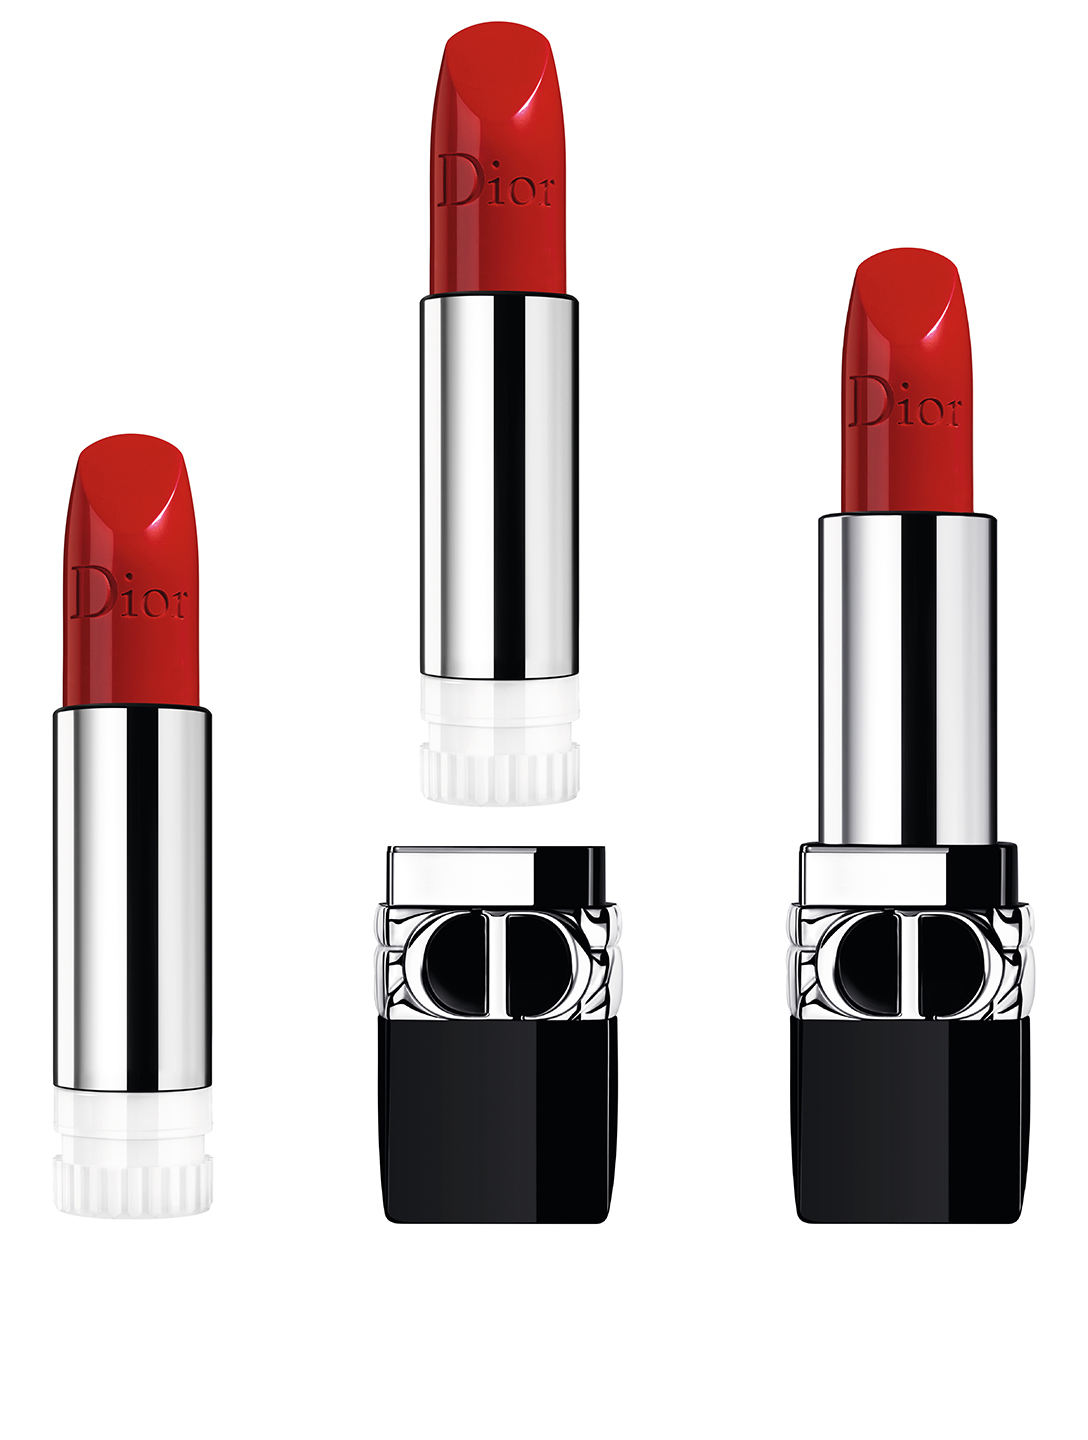 DIOR Rouge Dior Lipstick - The Refill Beauty Red